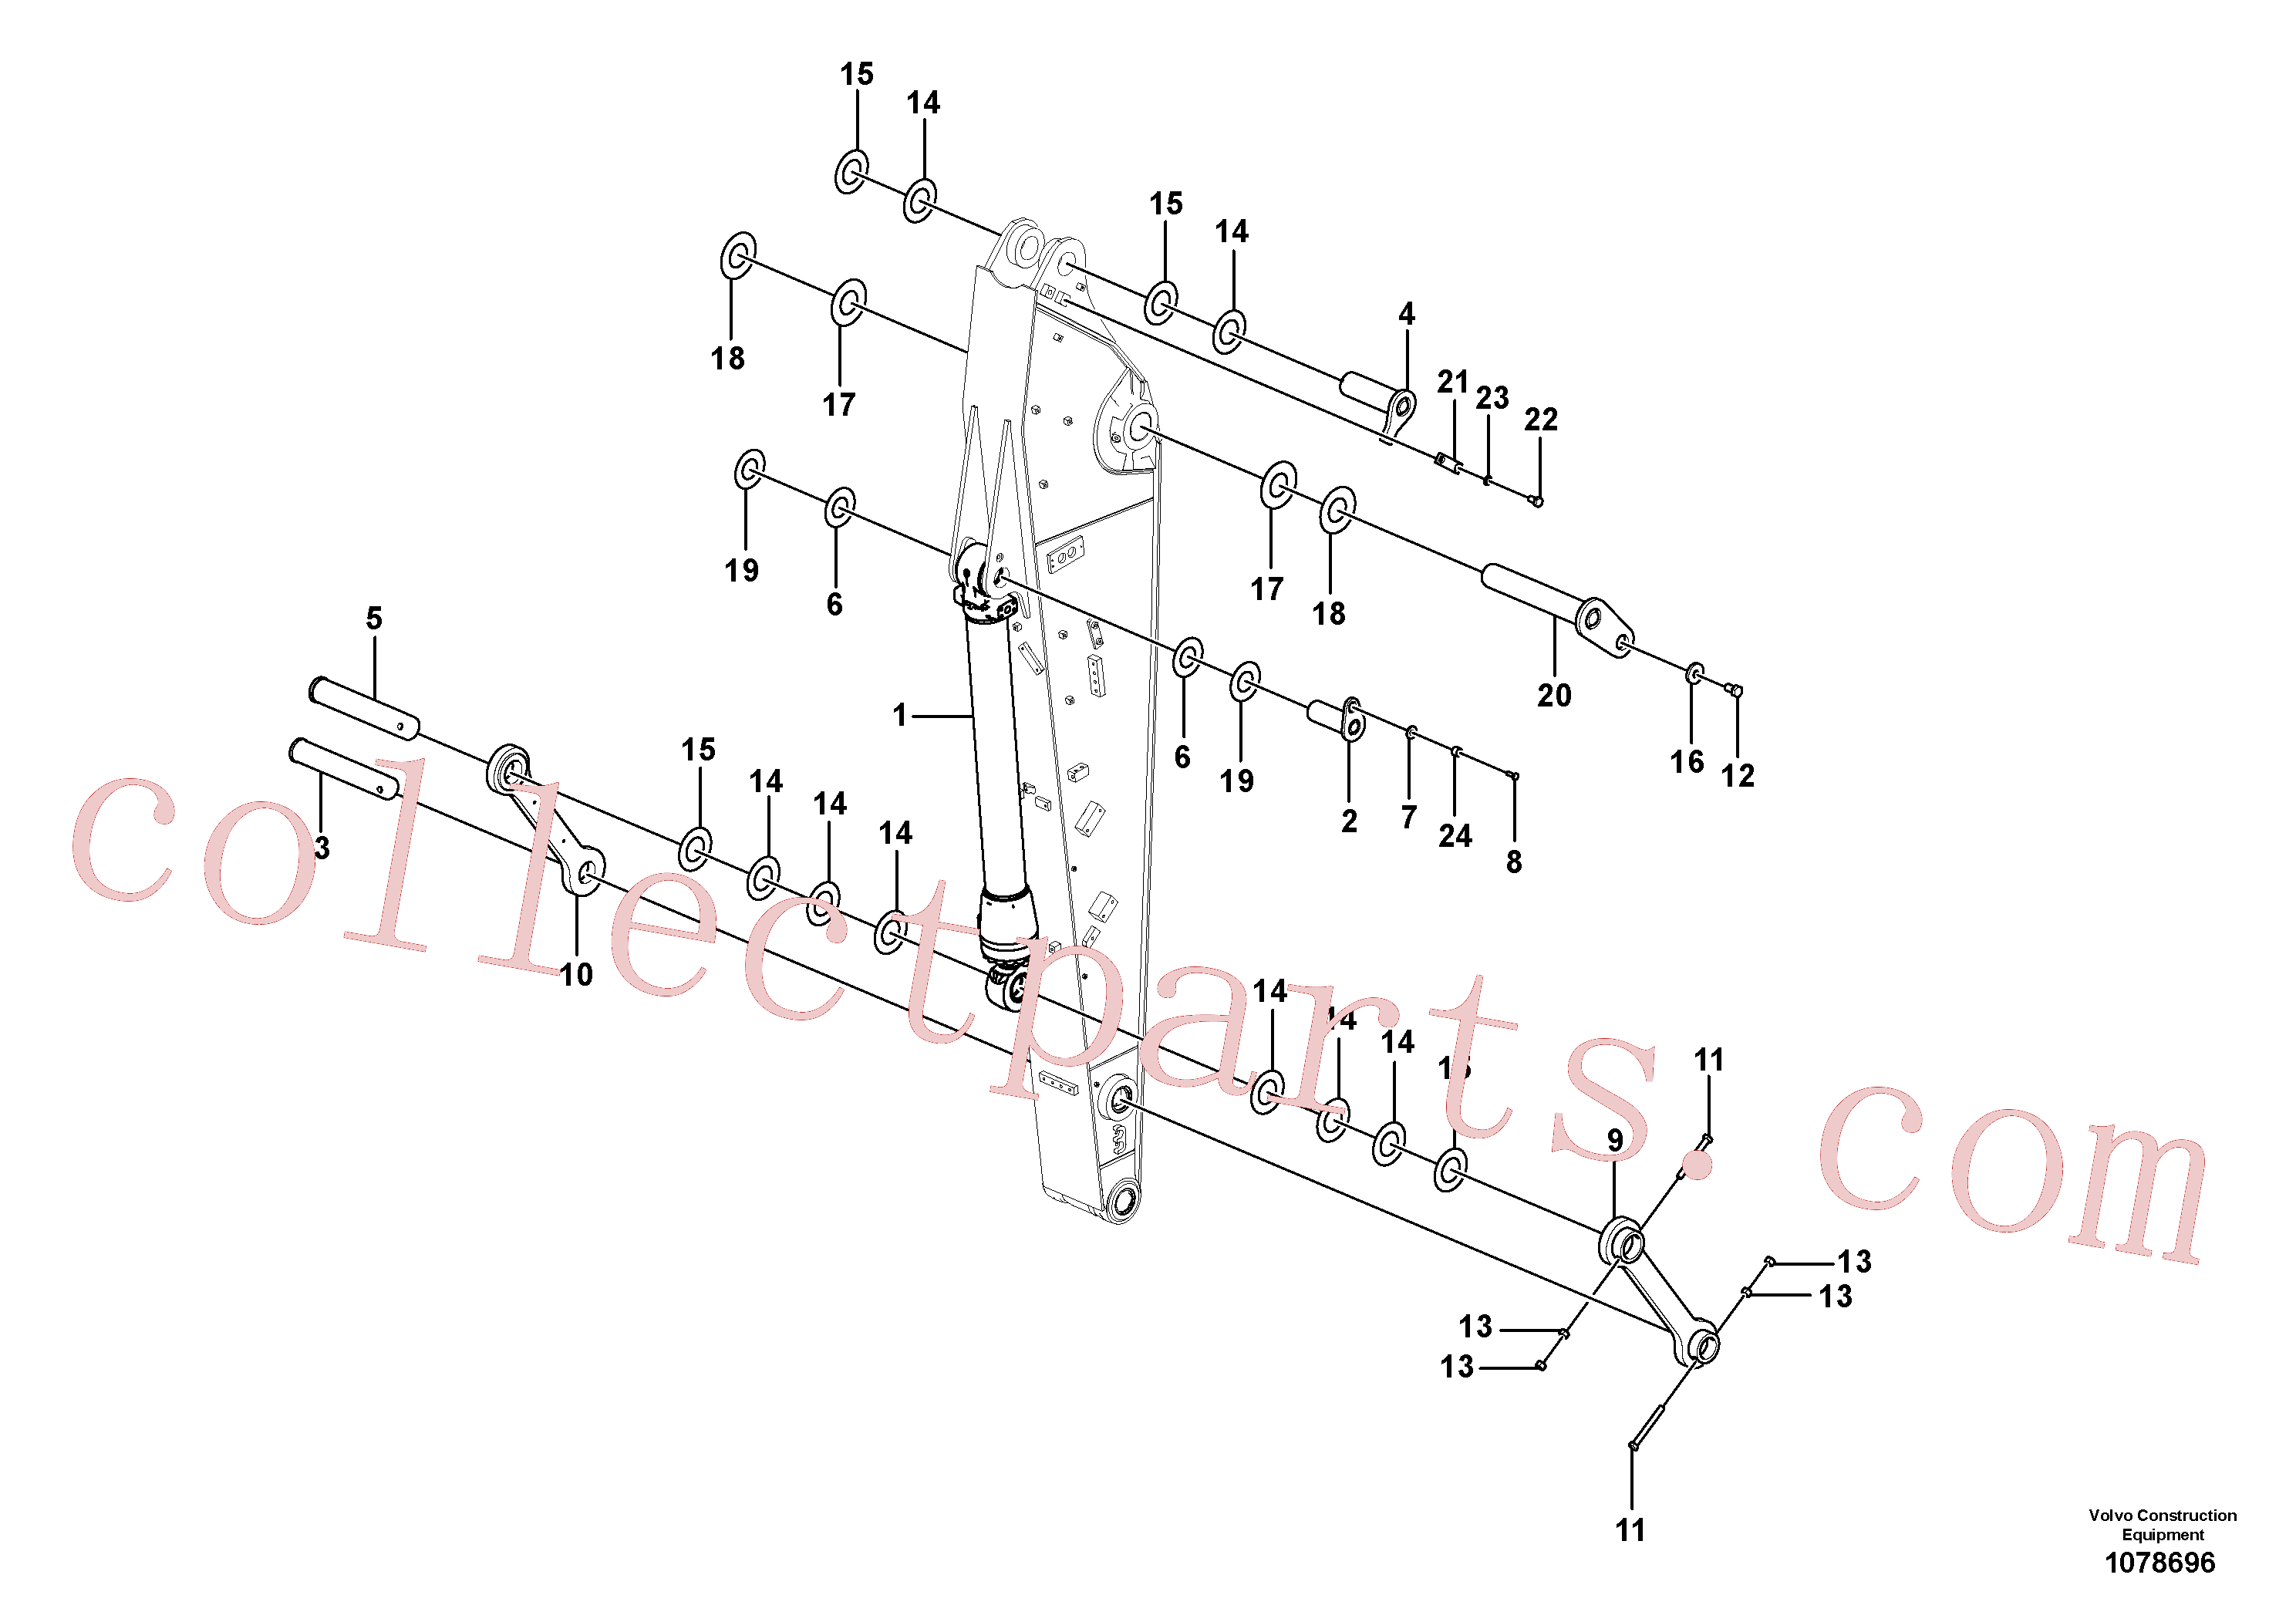 VOE14630955 for Volvo Links to dipper arm(1078696 assembly)